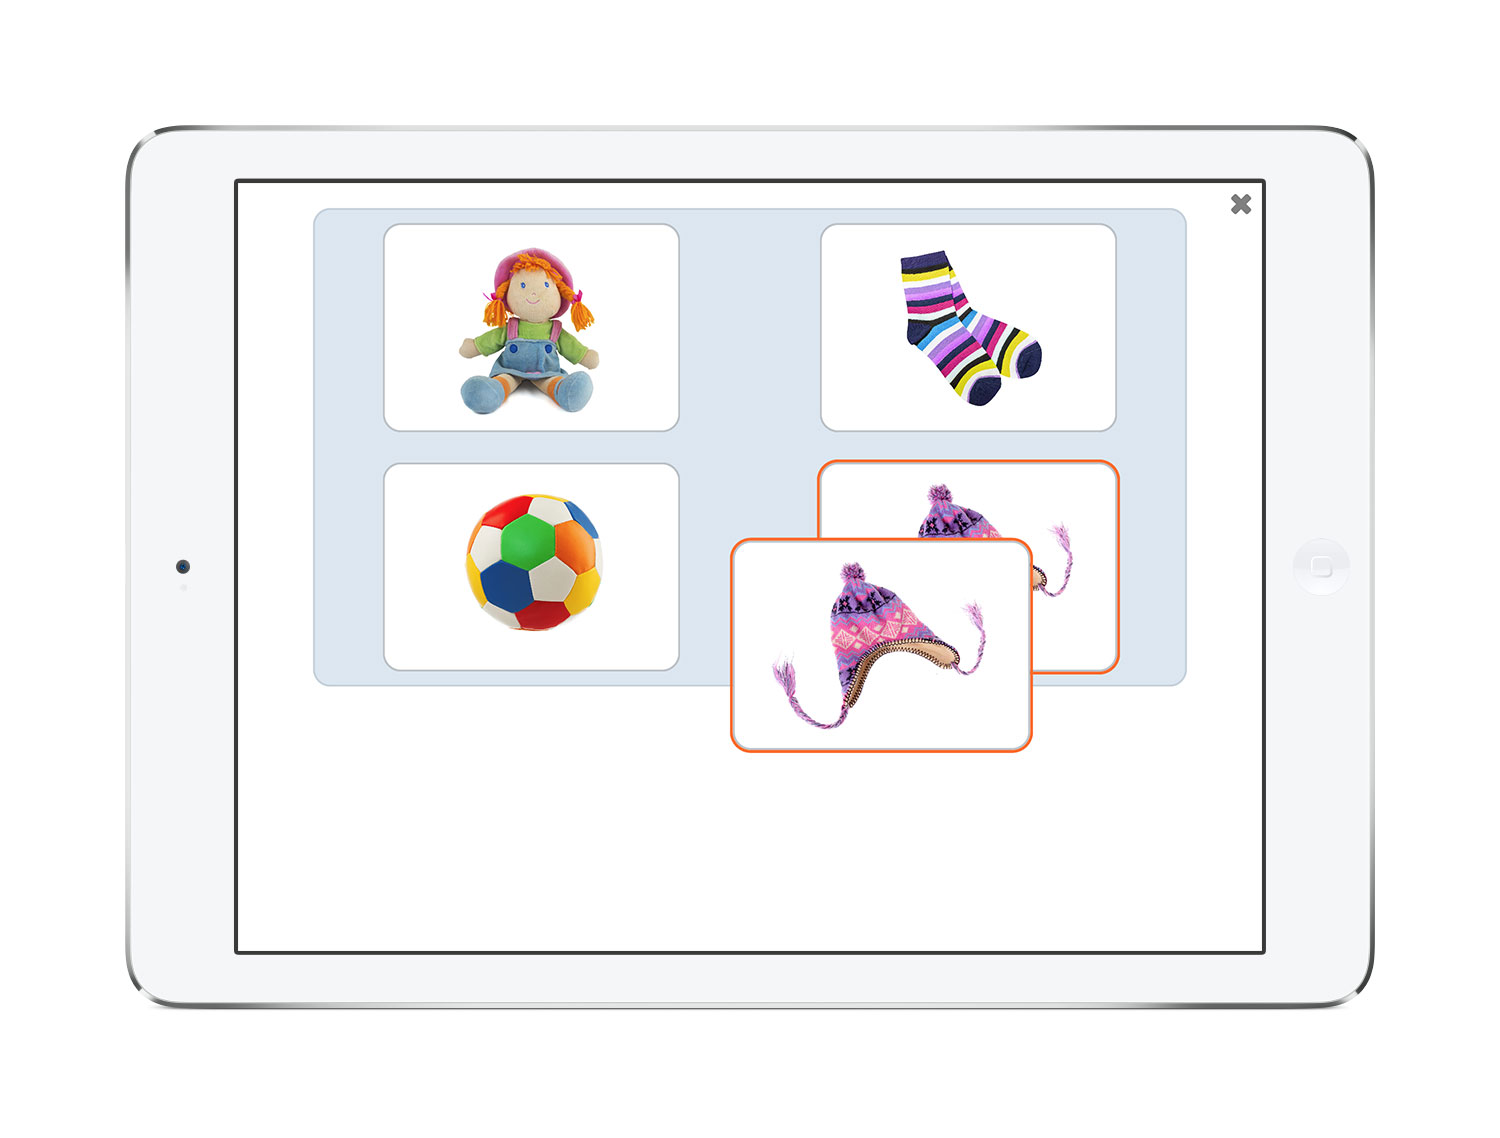 Picture of See and Learn Vocabulary 1 iPad app